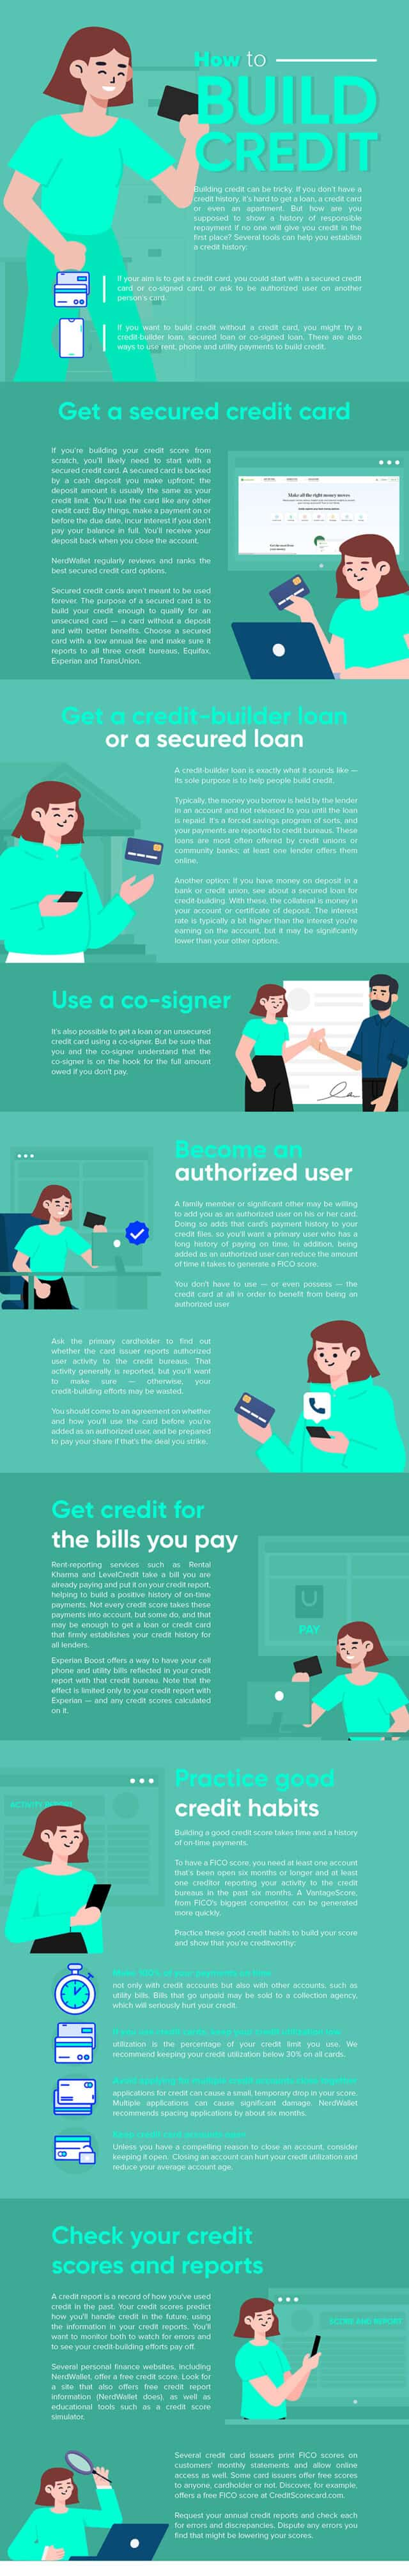 how to build your credit - infographic